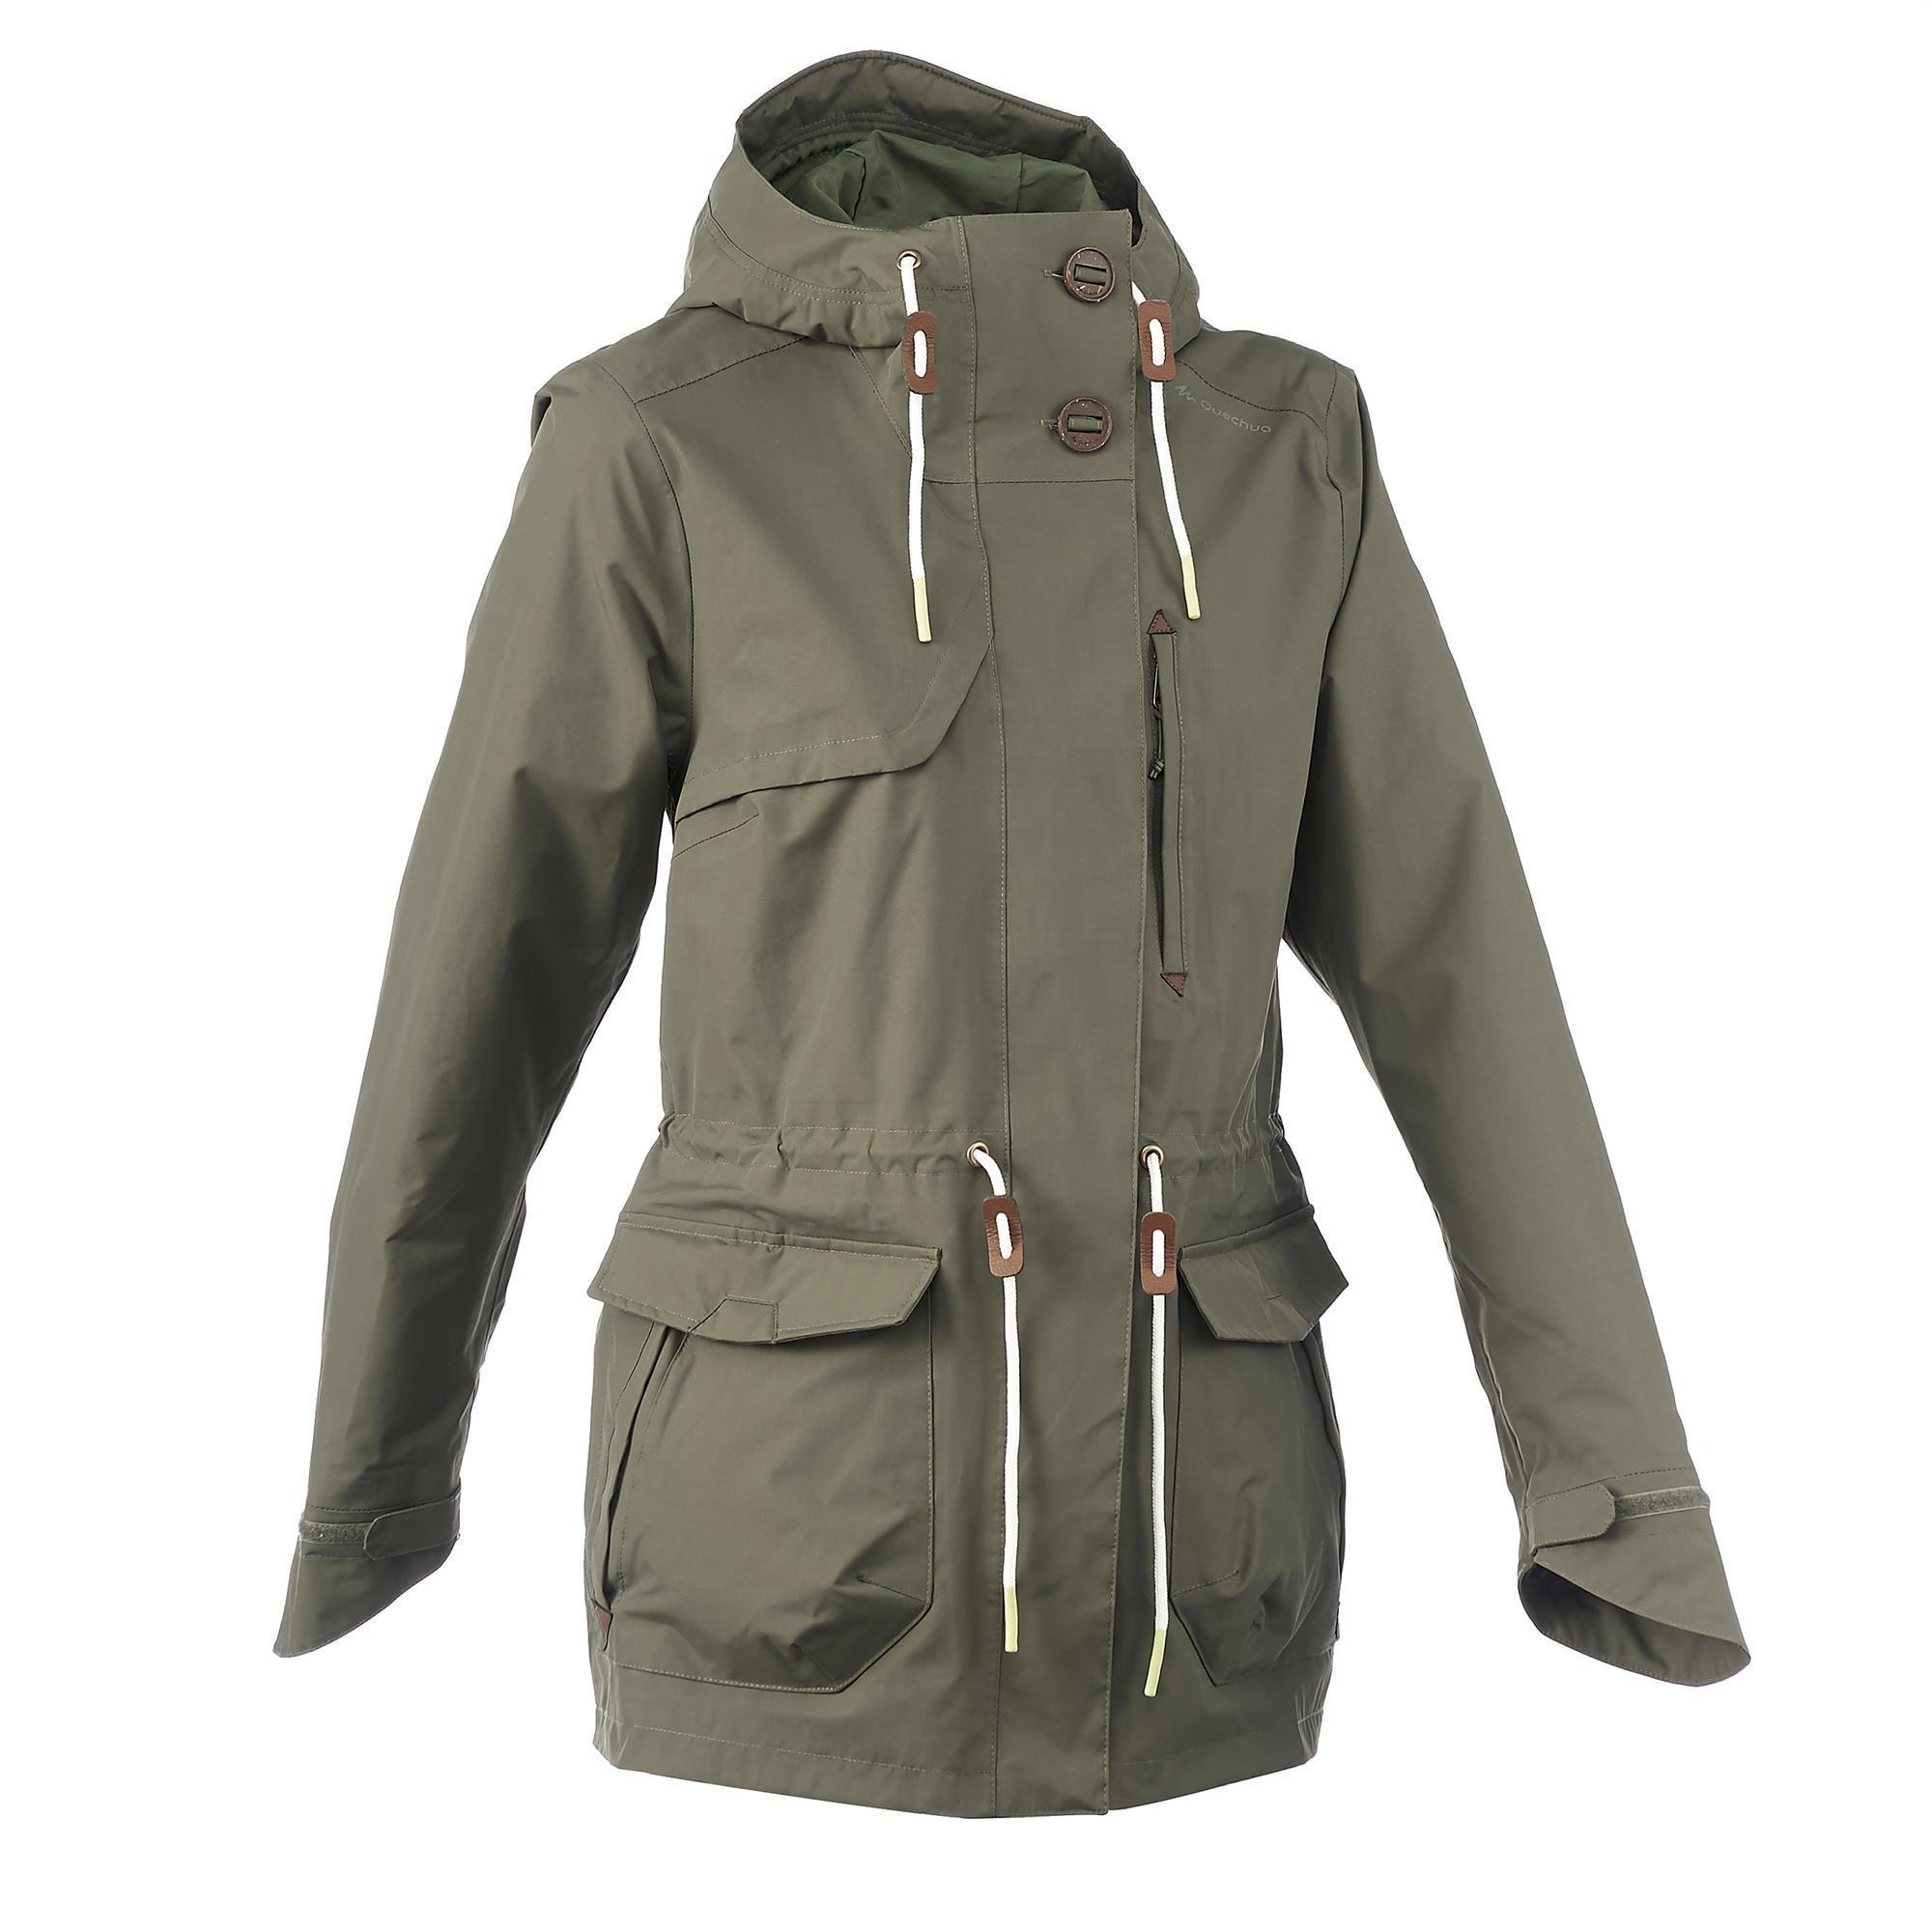 Khaki parka jacket for women